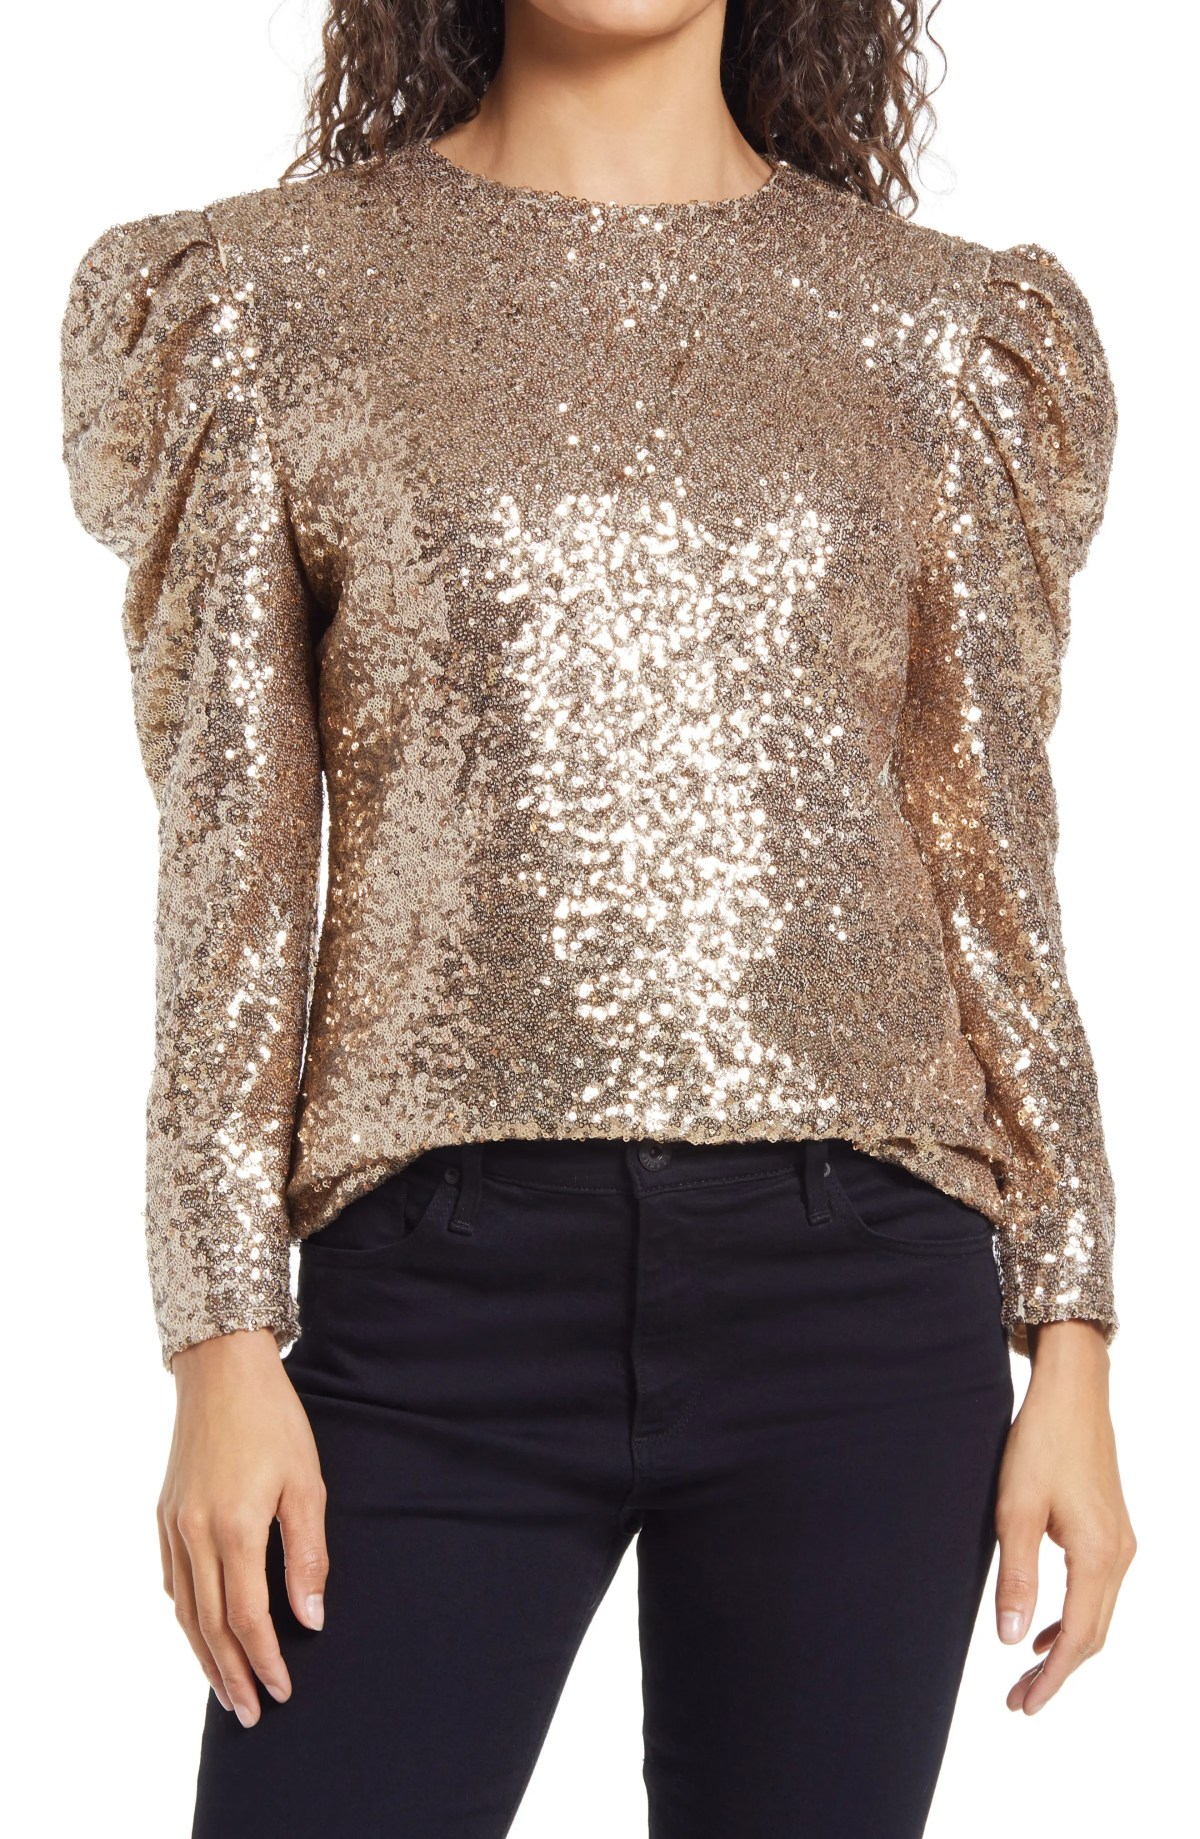 RACHEL PARCELL Rachel Parcel Sequin Puff Shoulder Top, Main, color, GOLD